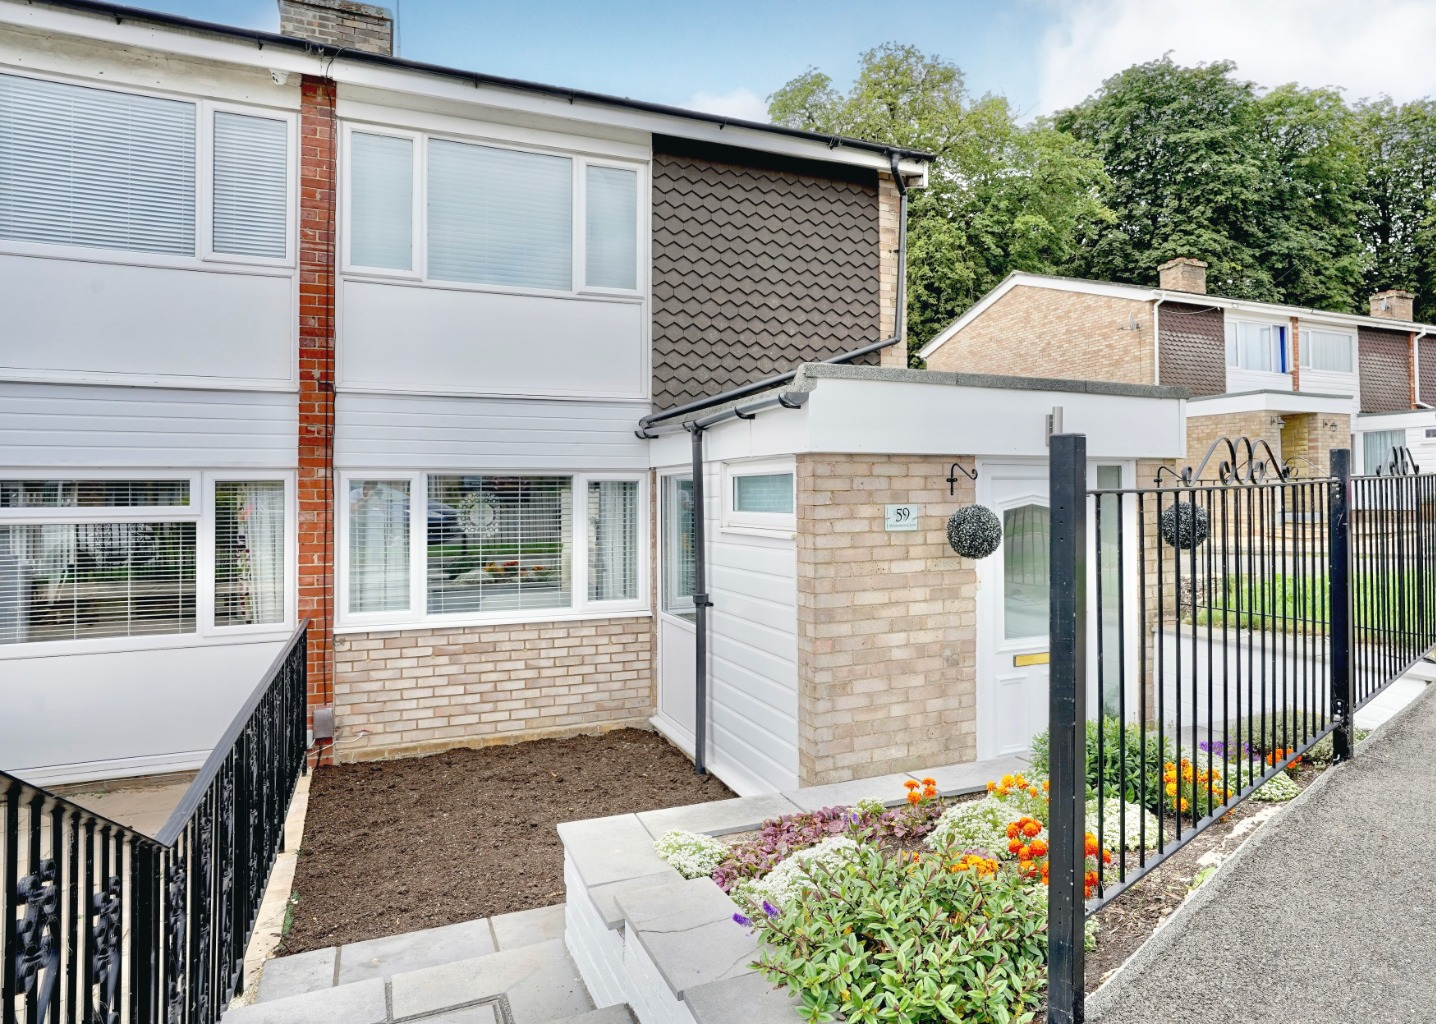 3 bed end of terrace house for sale in Wilkinson Close, St. Neots, PE19